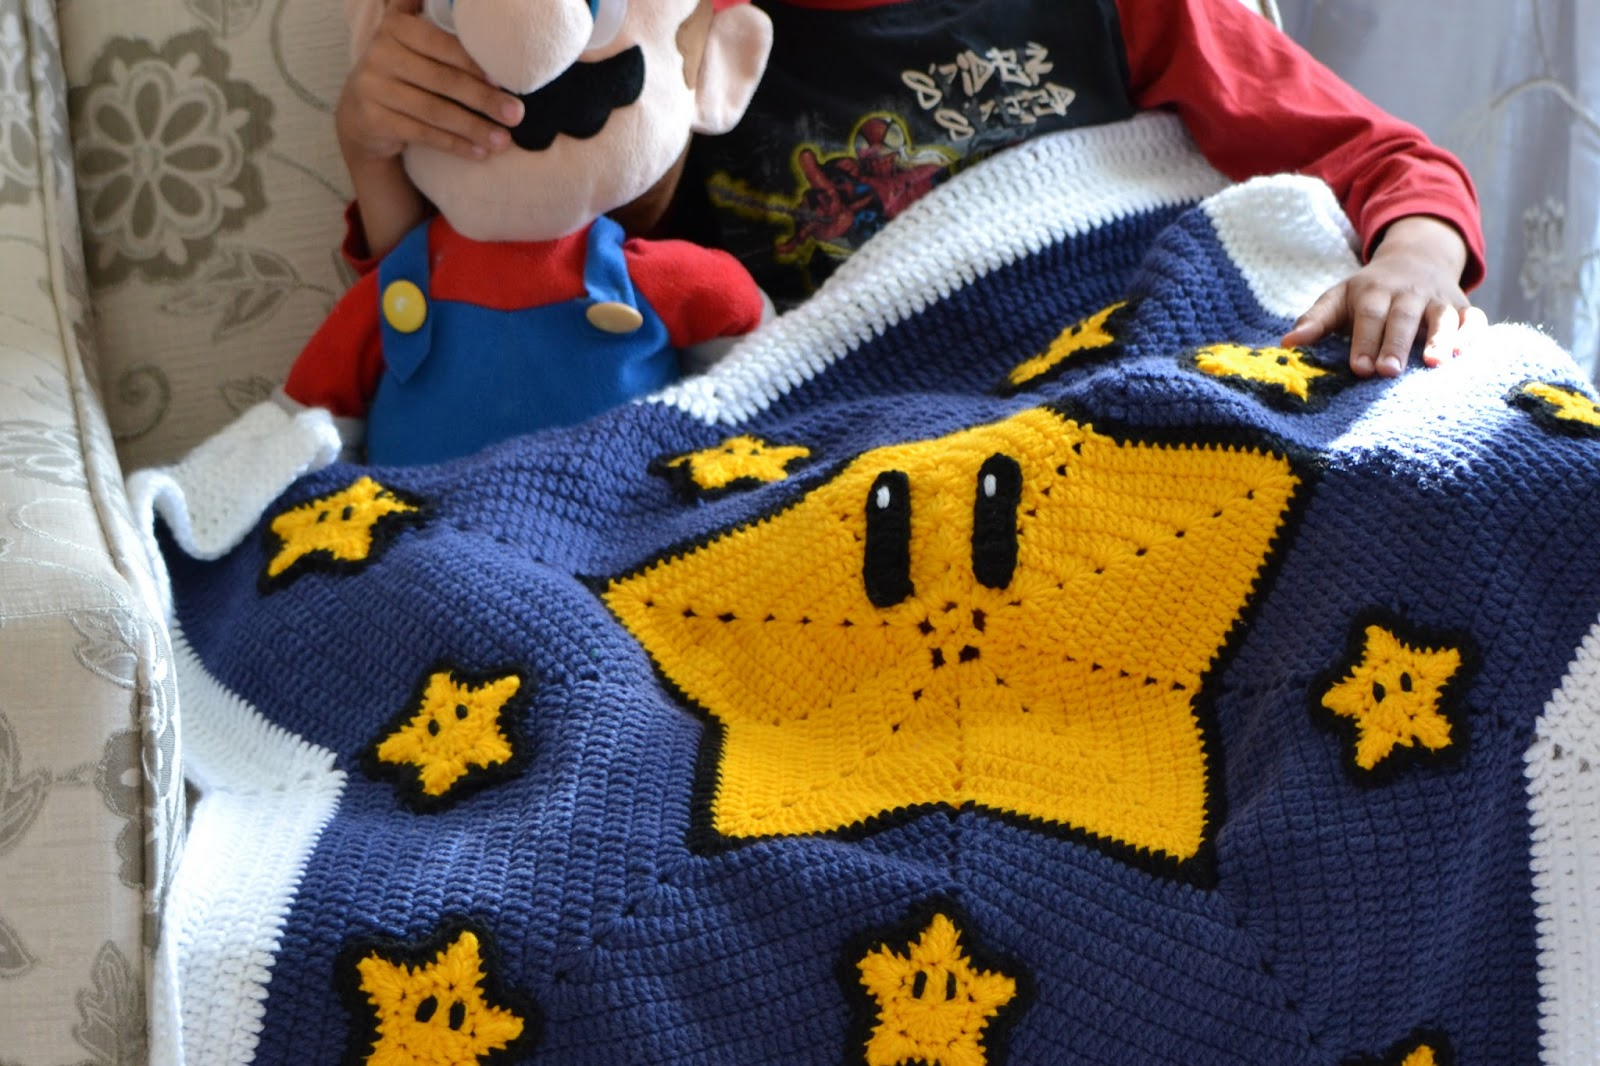 Knotty Knotty Crochet: more than the stars in the sky FREE PATTERN ...